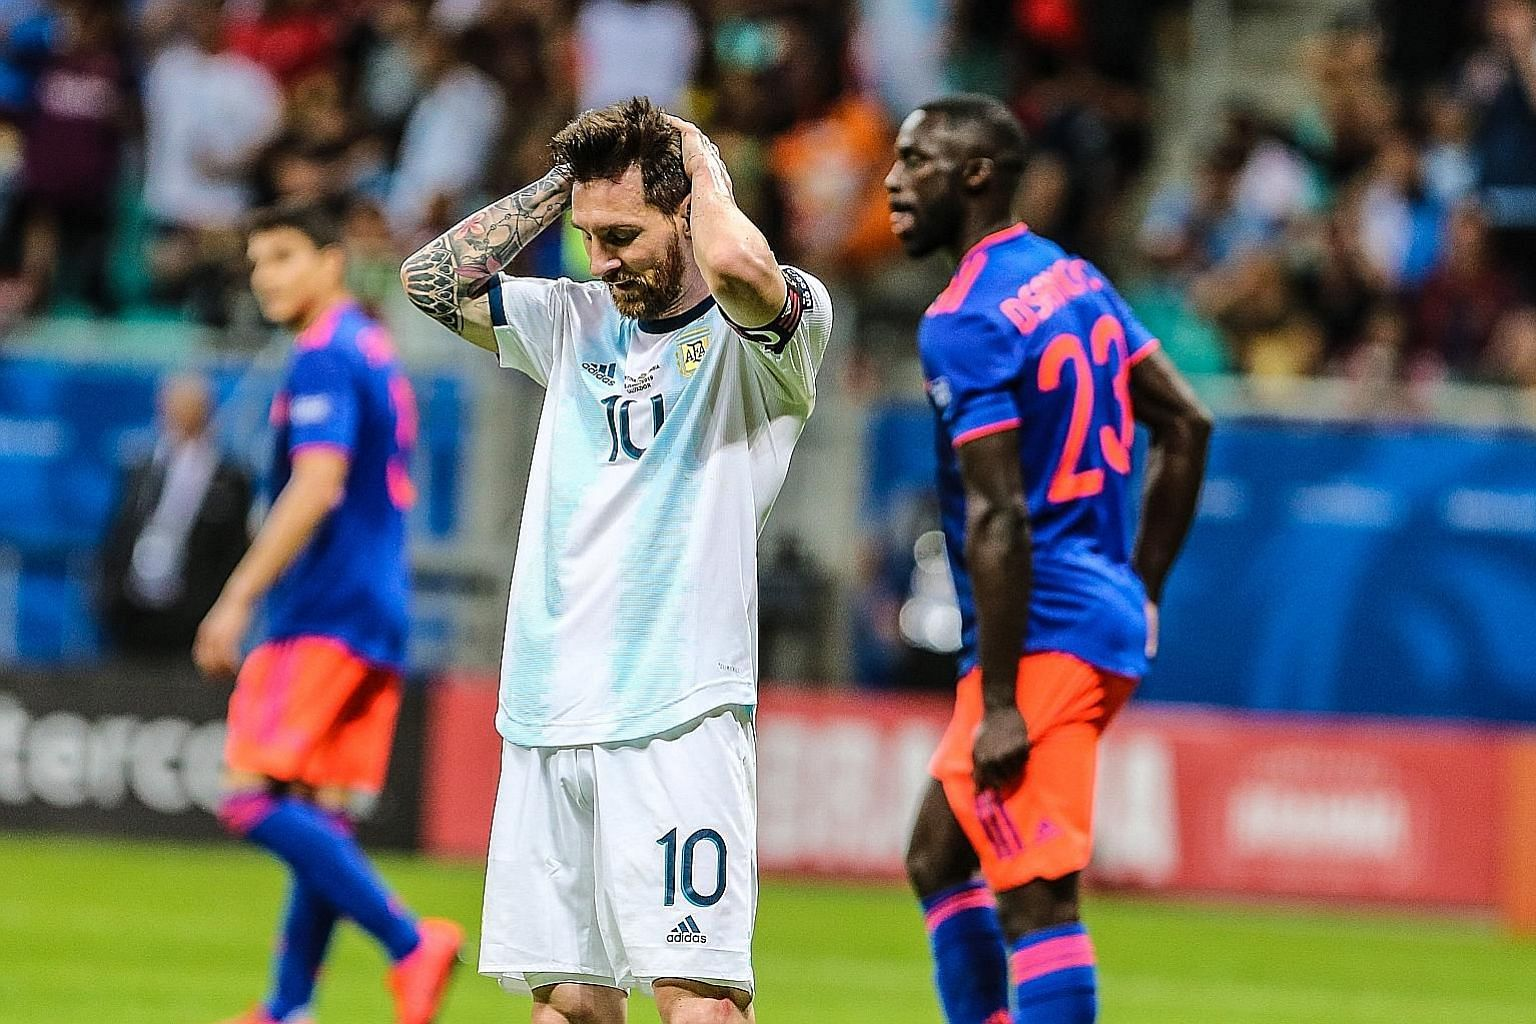 Argentina forward Lionel Messi shows his frustration during the 2-0 Copa America Group B defeat by Colombia on Saturday - the first competitive loss to their neighbours in 12 years. PHOTO: DPA